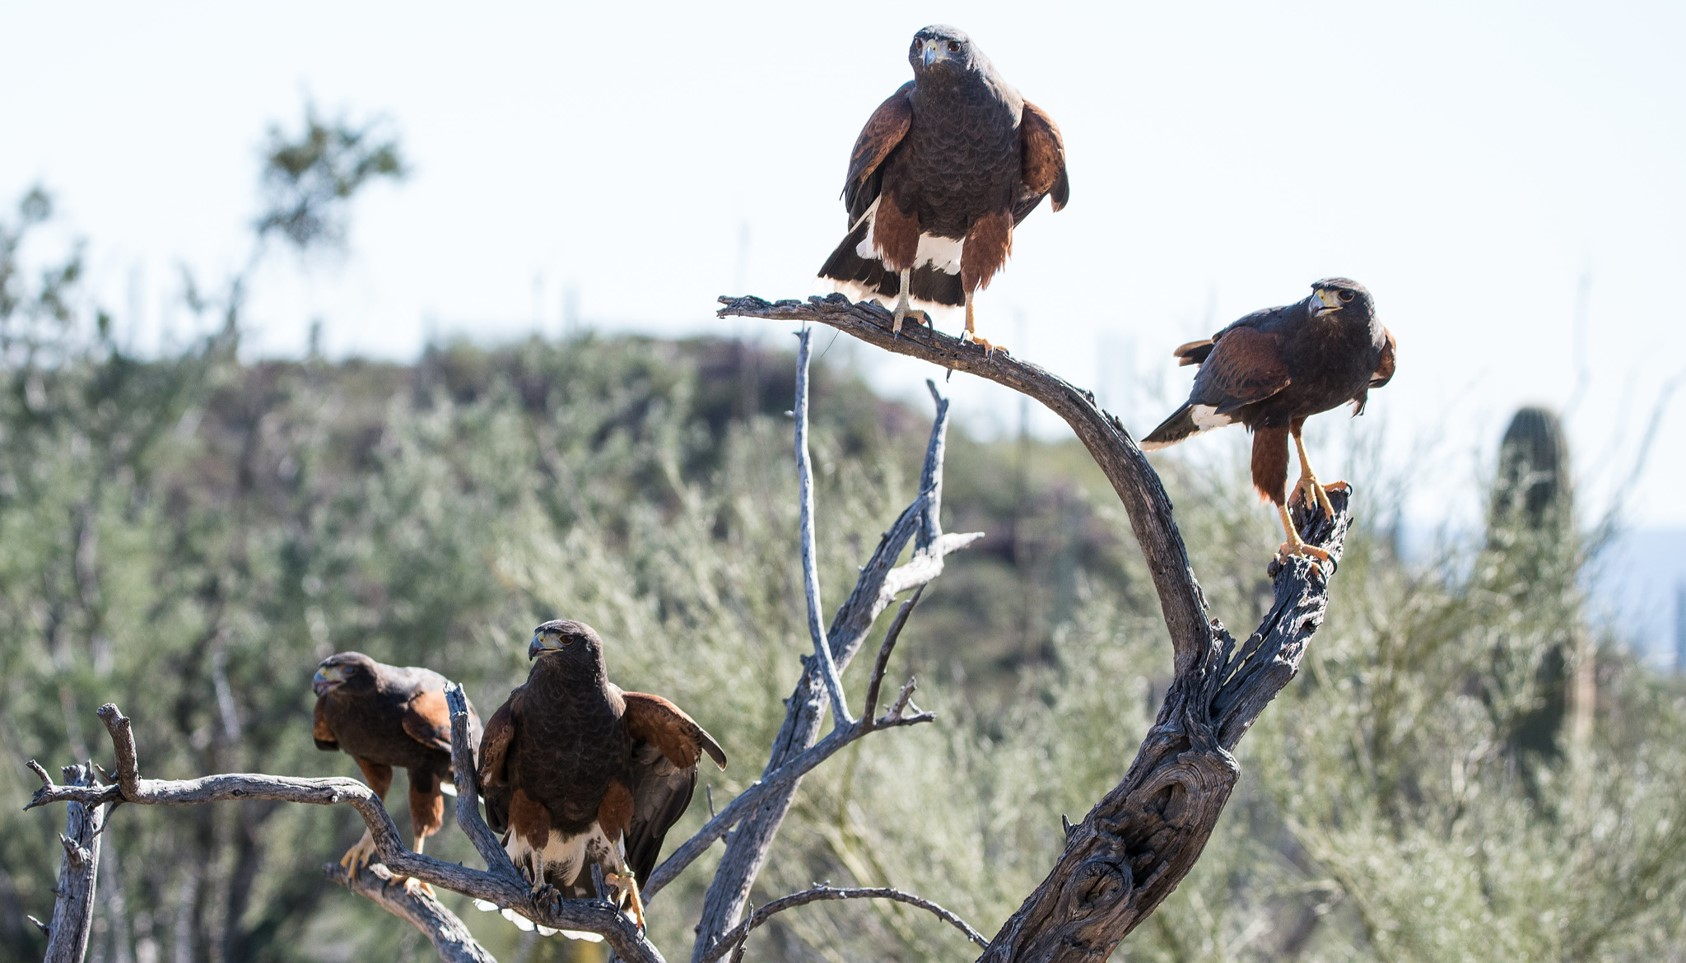 A family of Harris's Hawks perch together on branches of a dead tree in a desert.